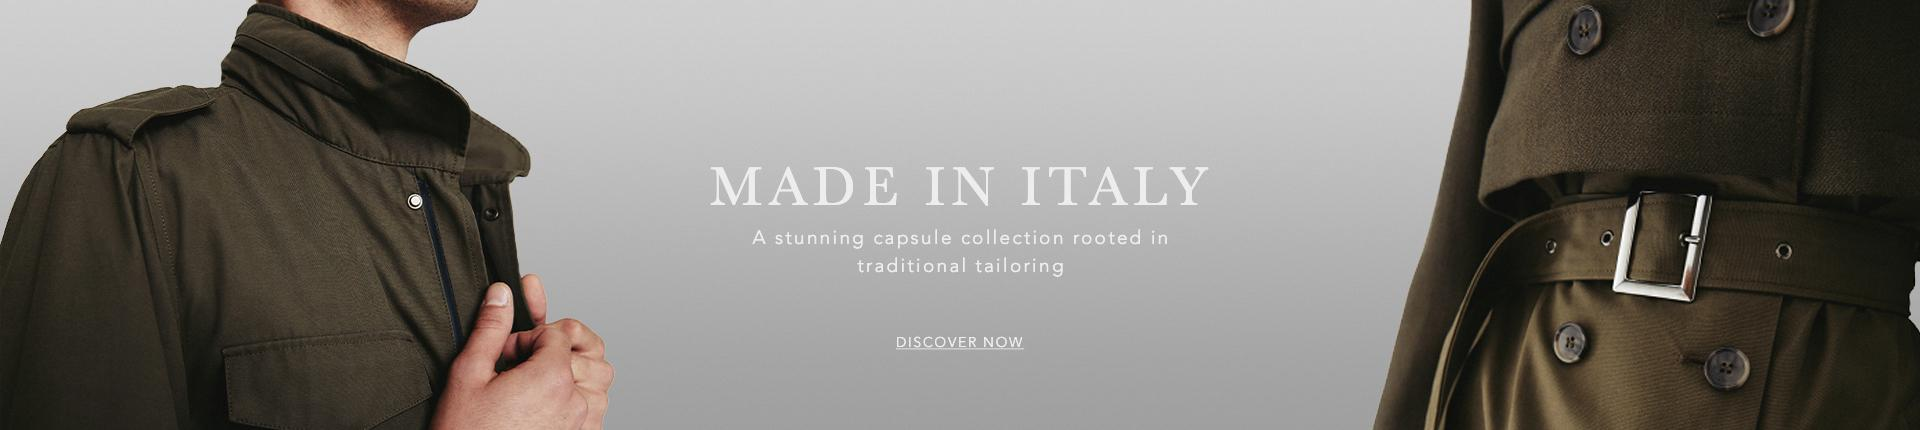 The Made In Italy Collection